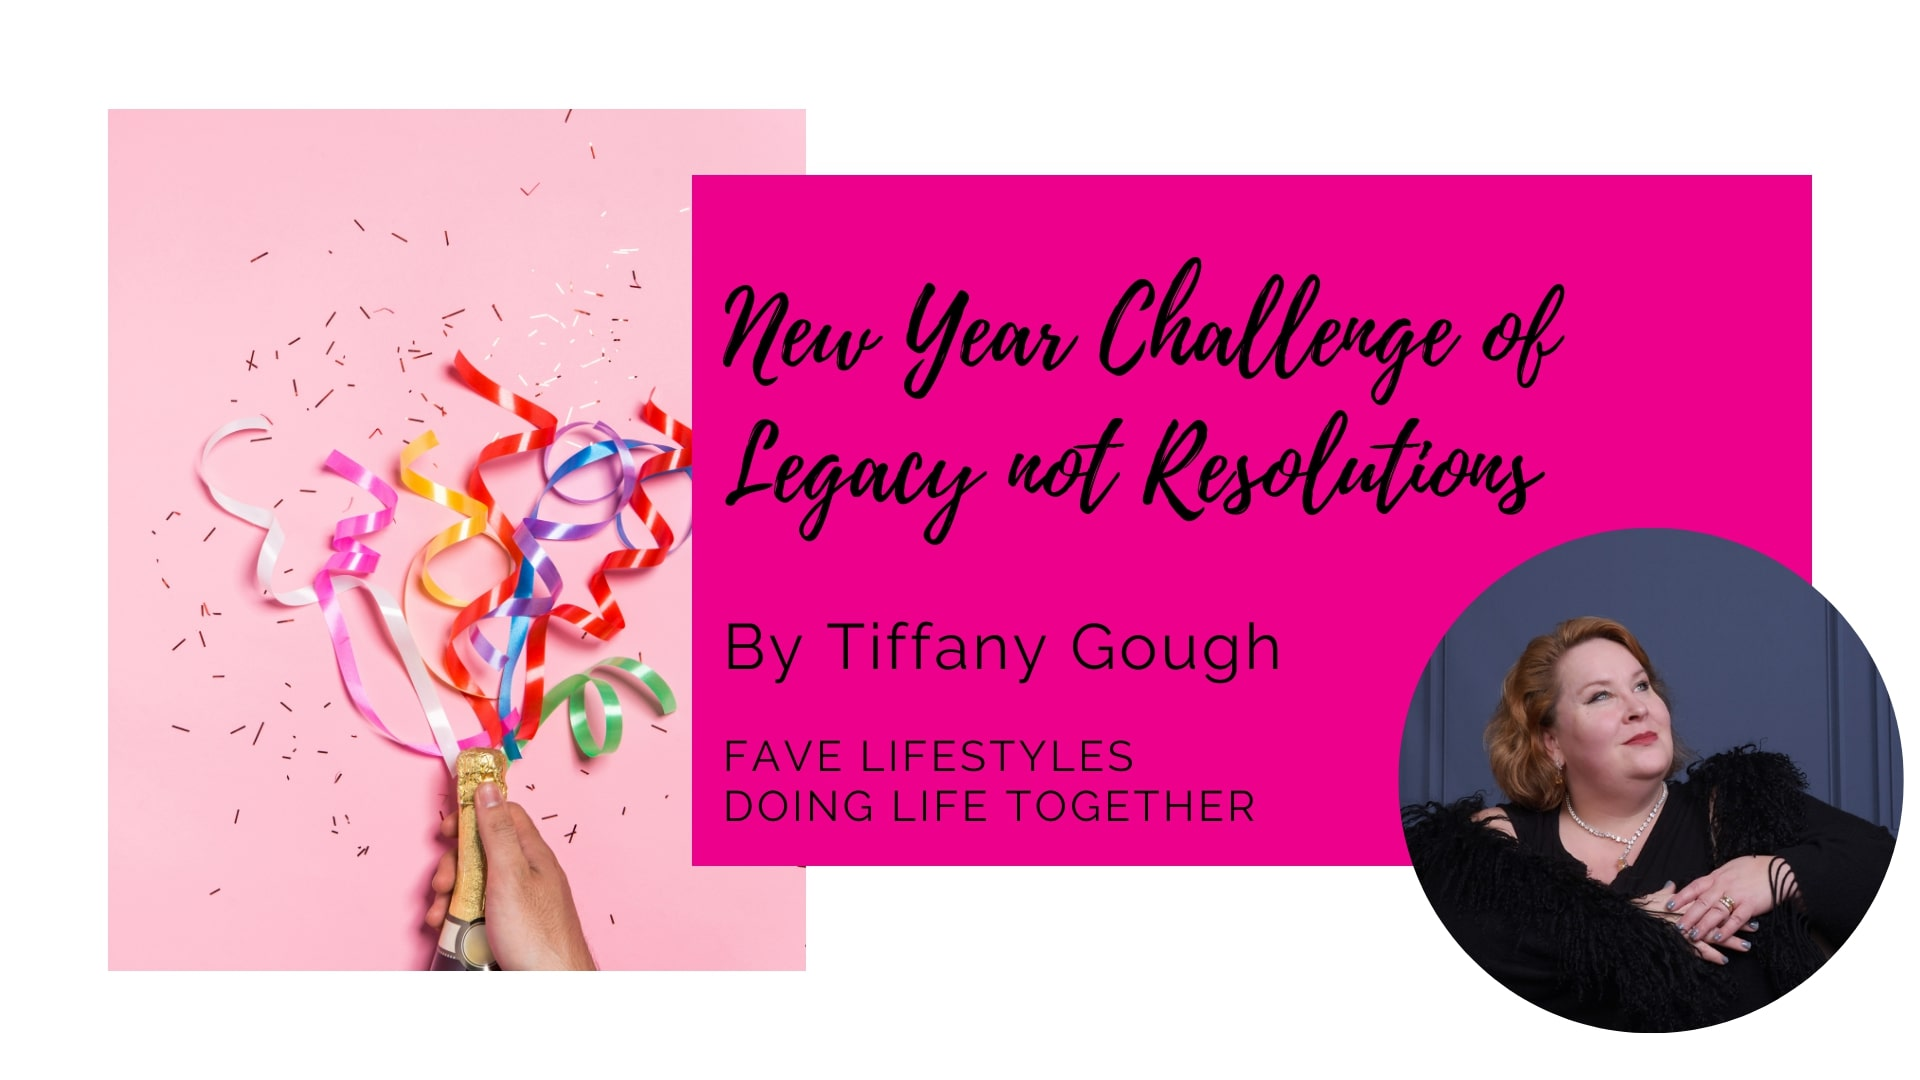 2021: New Year Challenge of Legacy not Resolutions